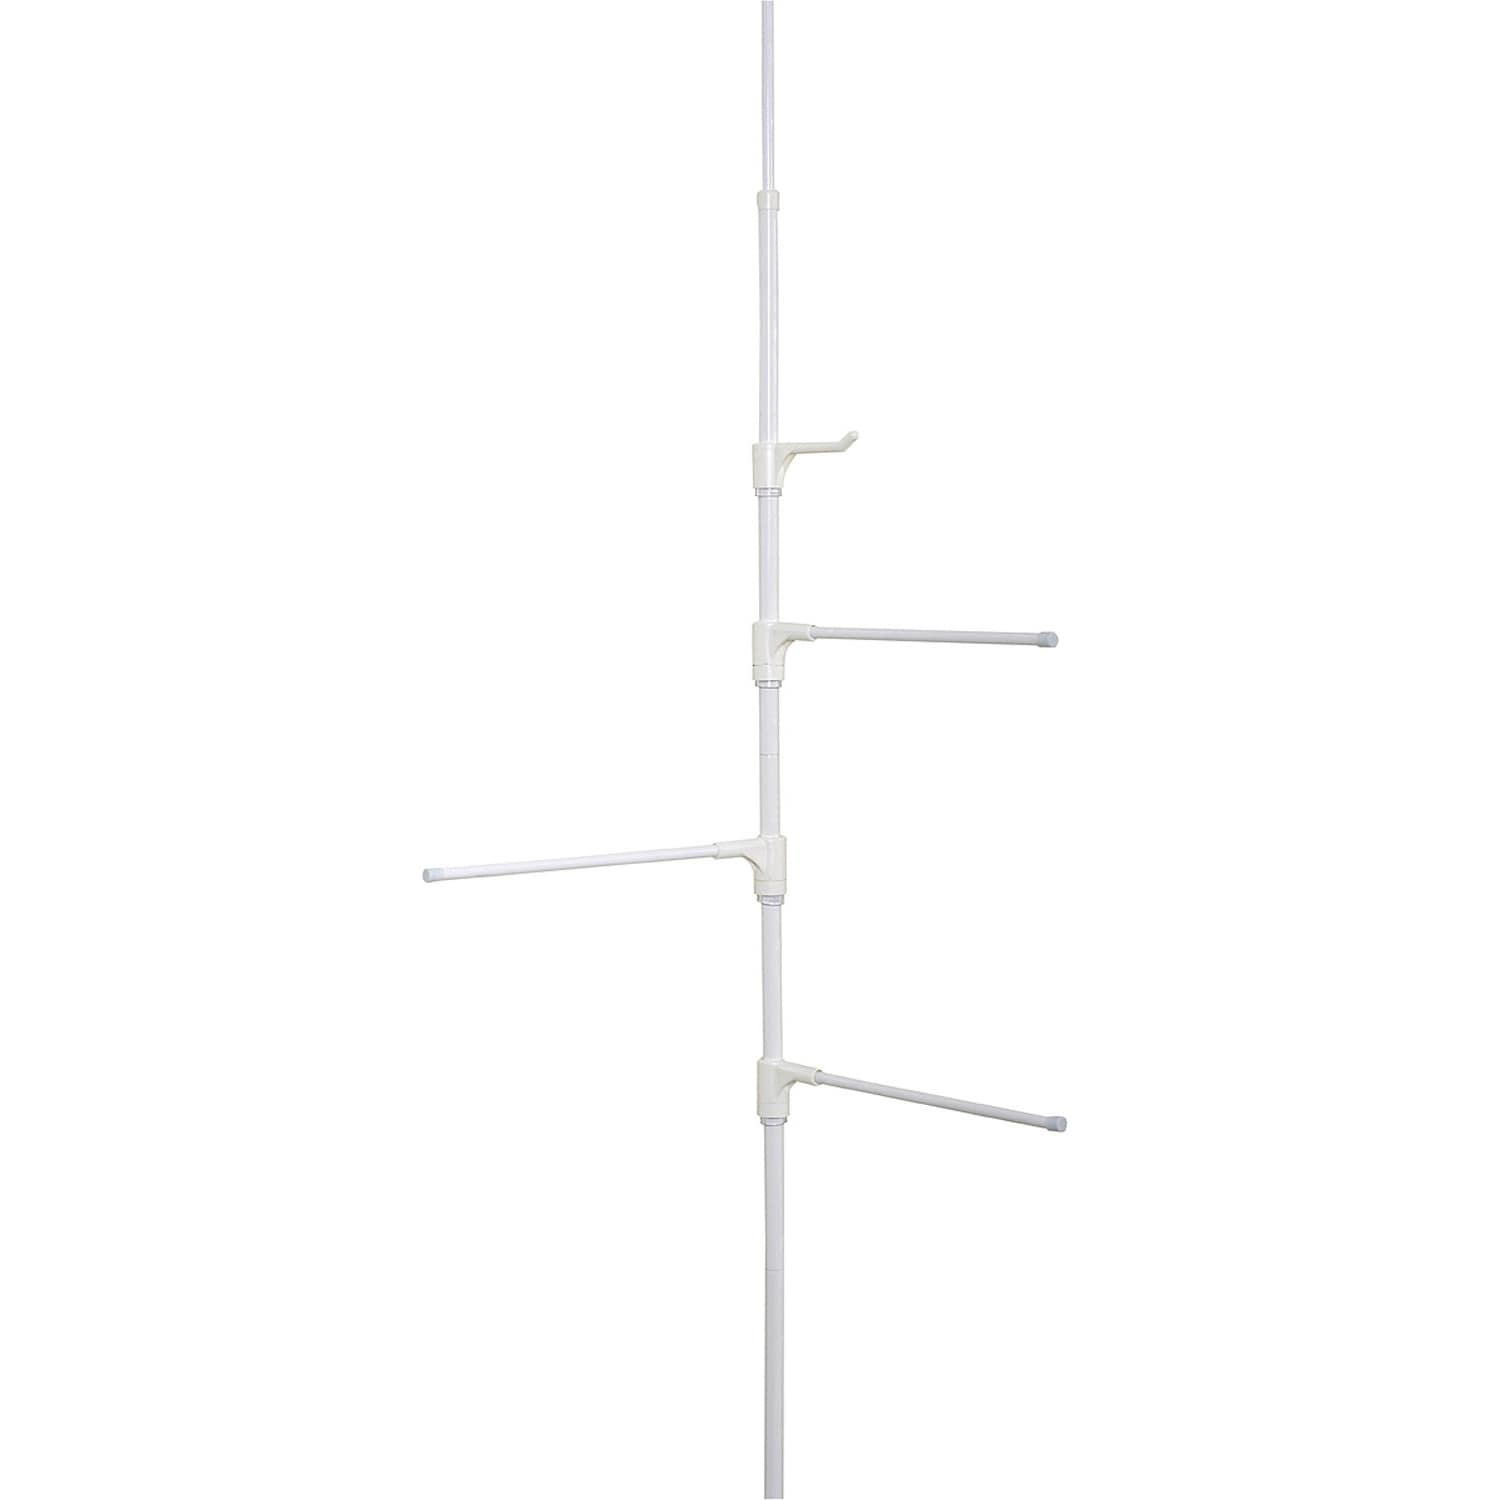 Zenith Zenna Home Tension or Hinge Mount Pole Towel Caddy...